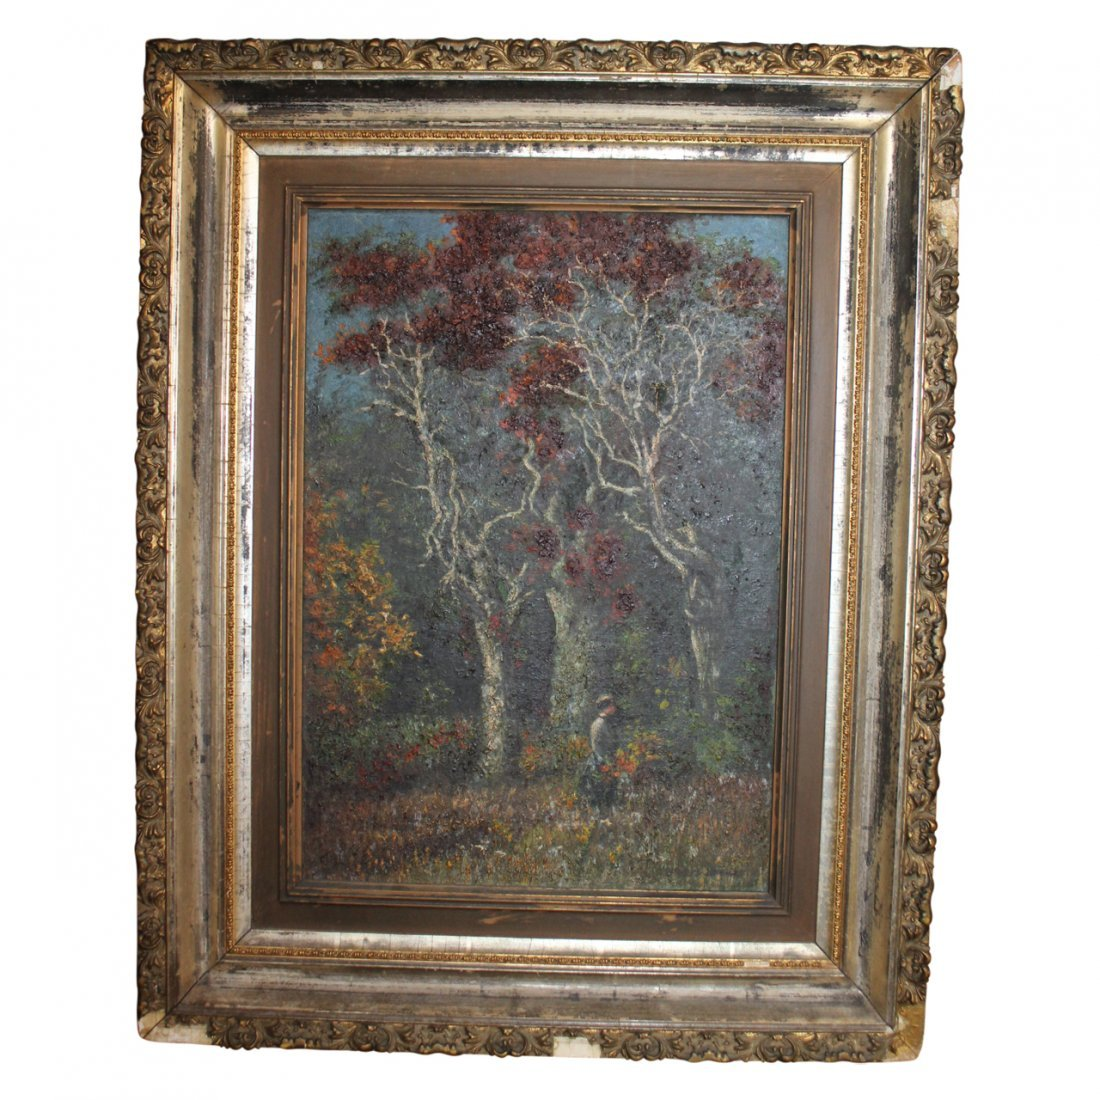 Oil Painting of a Forrest Signed Illegibly